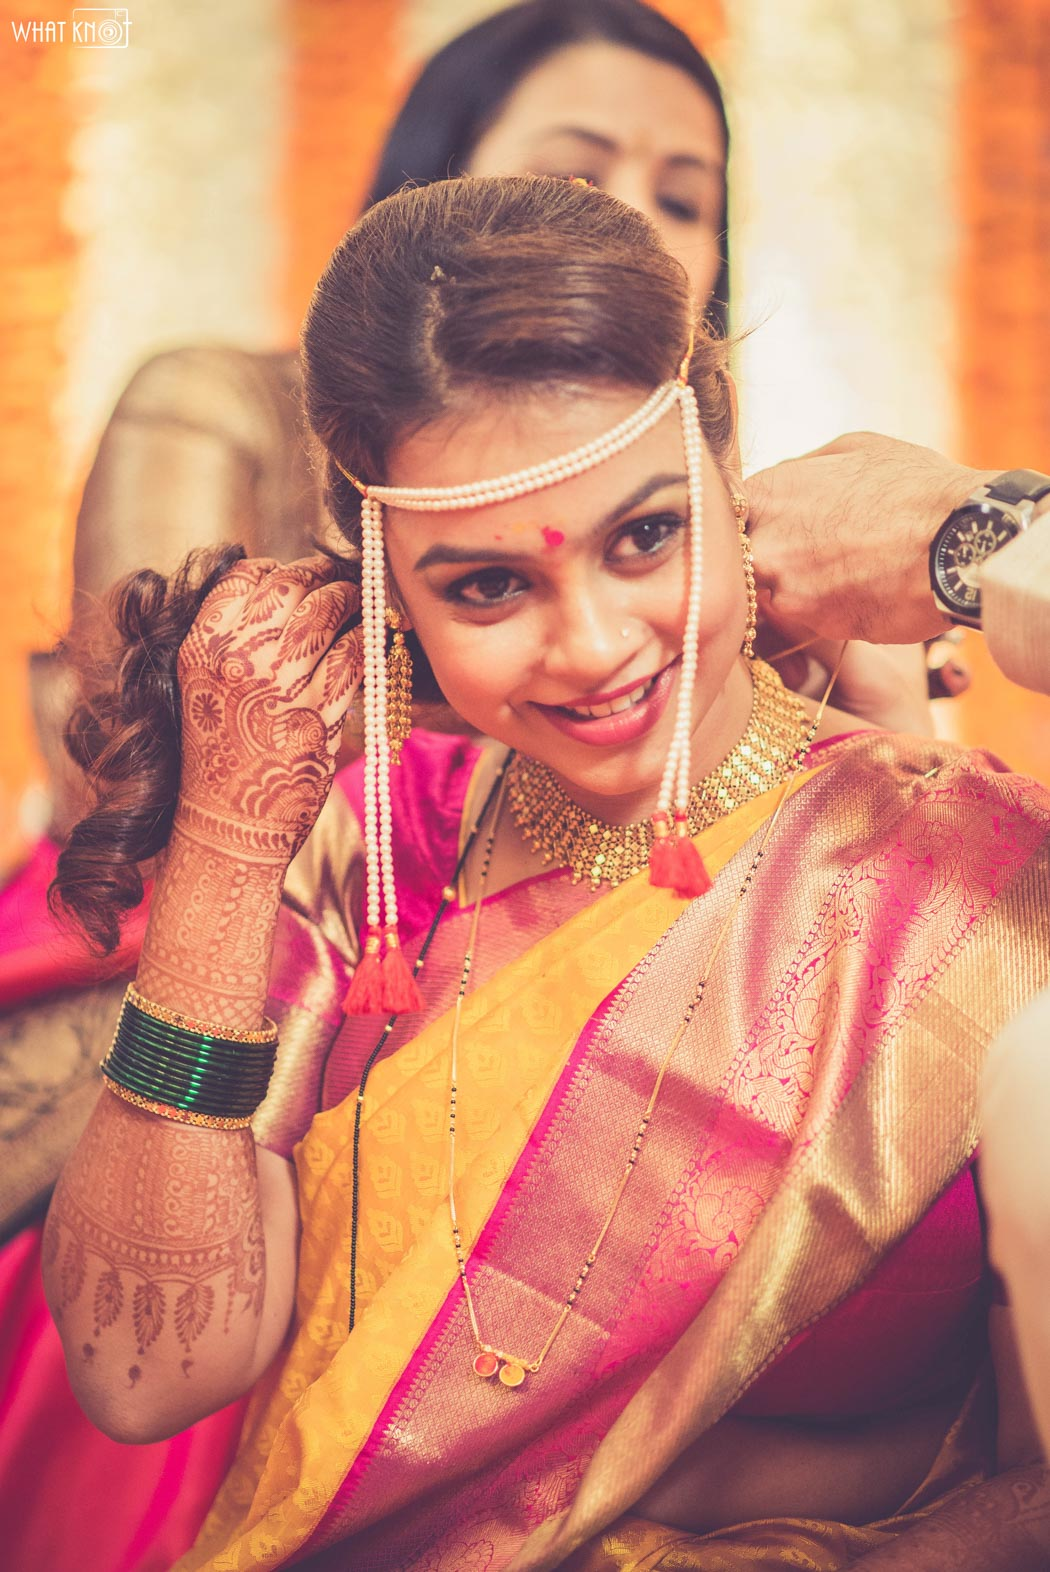 Candid-Wedding-Photography-WhatKnot-Marathi-117